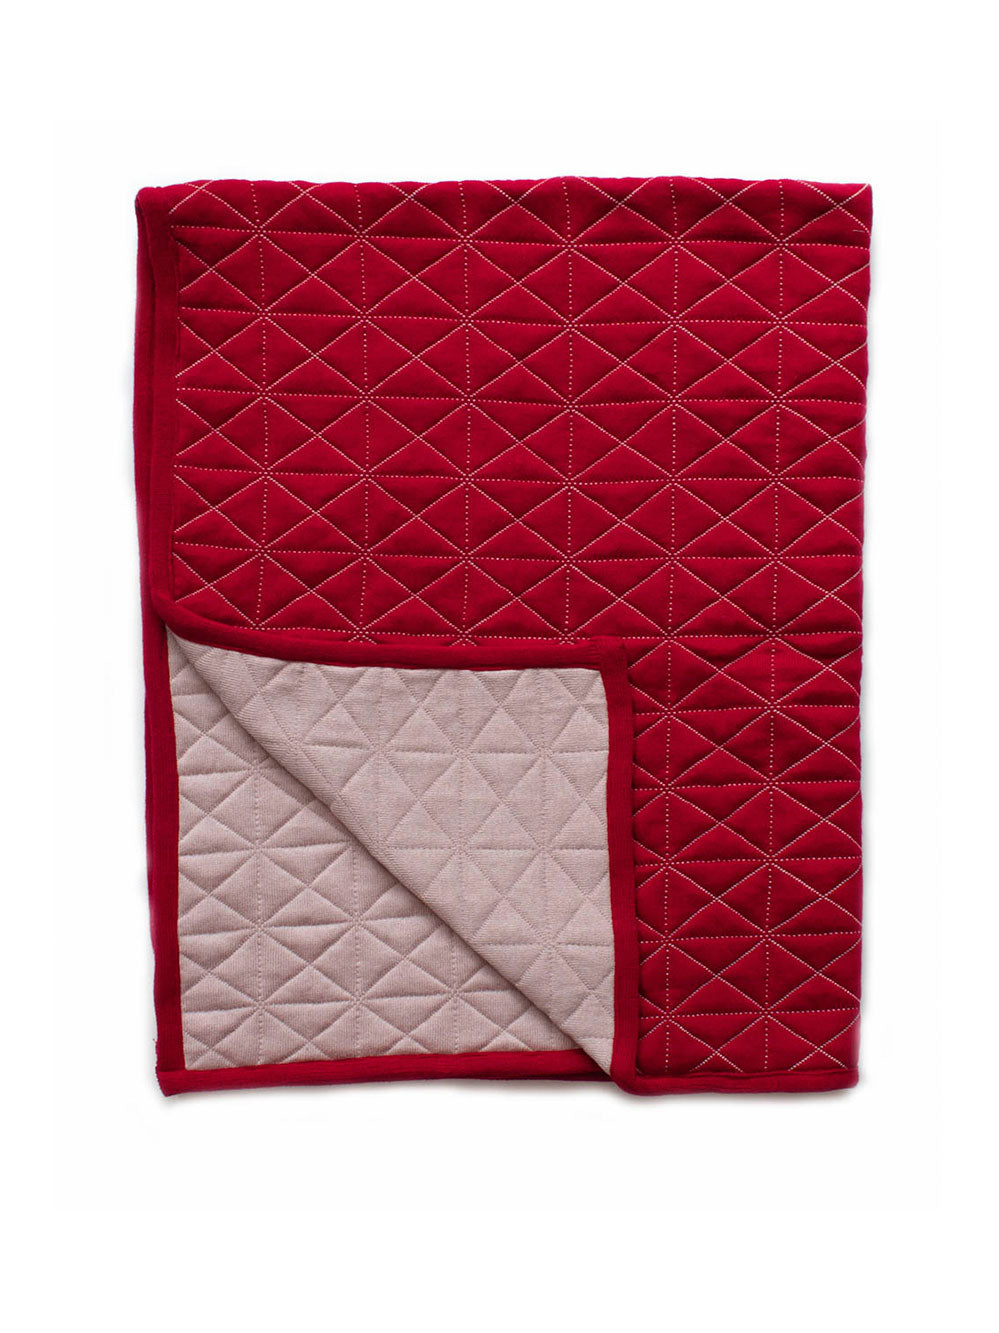 Poppy - Reversible quilted Blanket